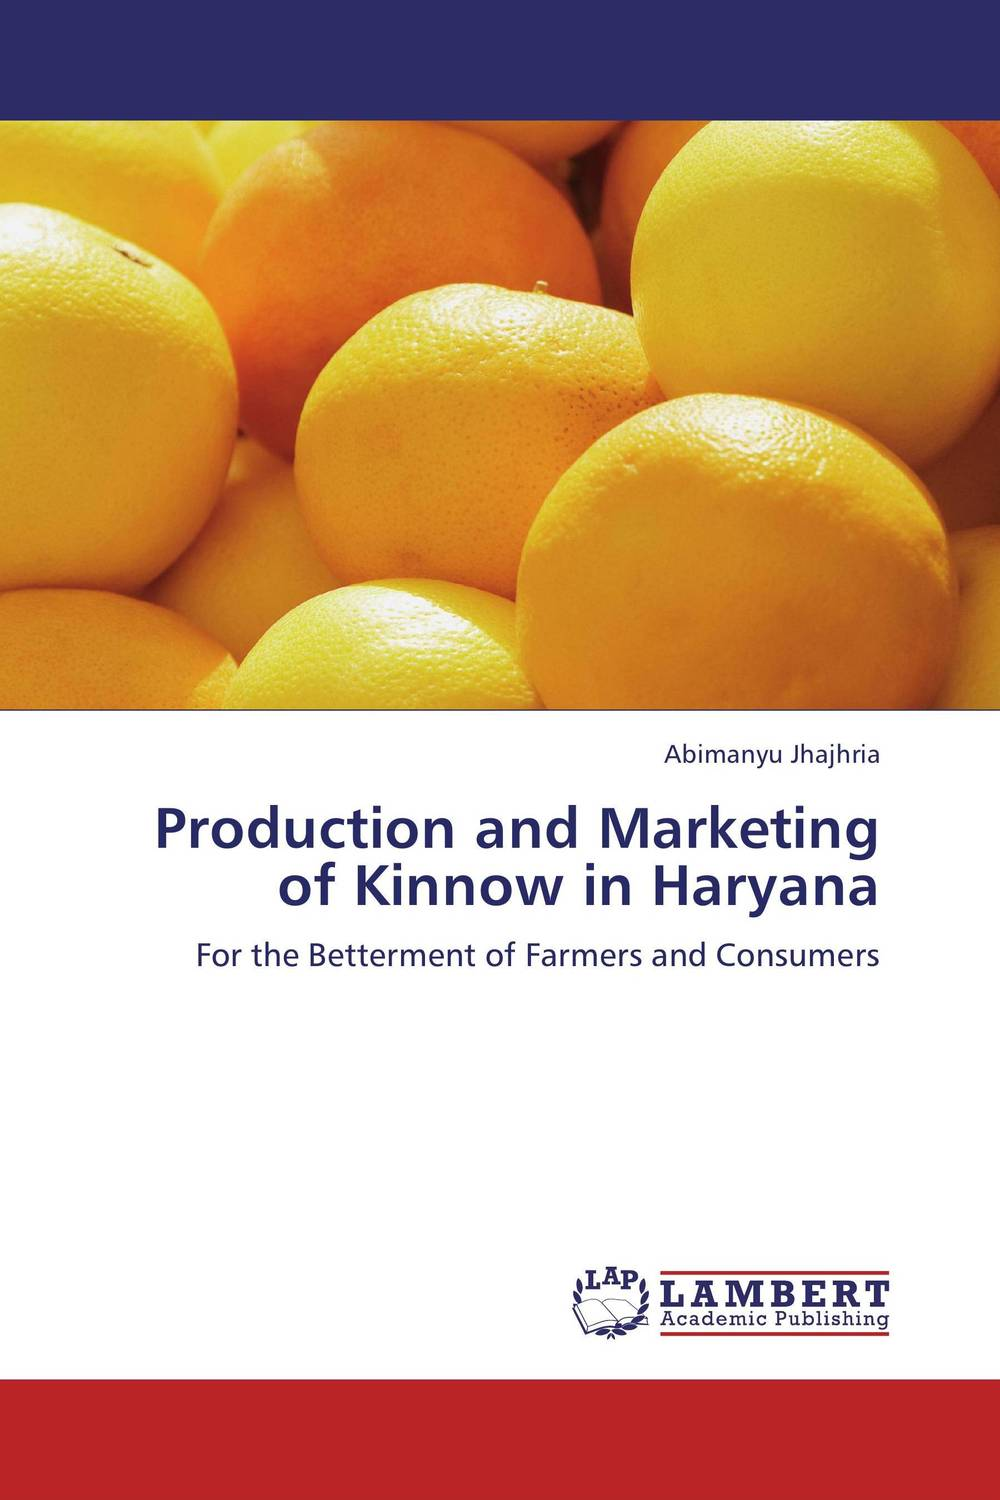 Production and Marketing of Kinnow in Haryana hans hedin the handbook of market intelligence understand compete and grow in global markets